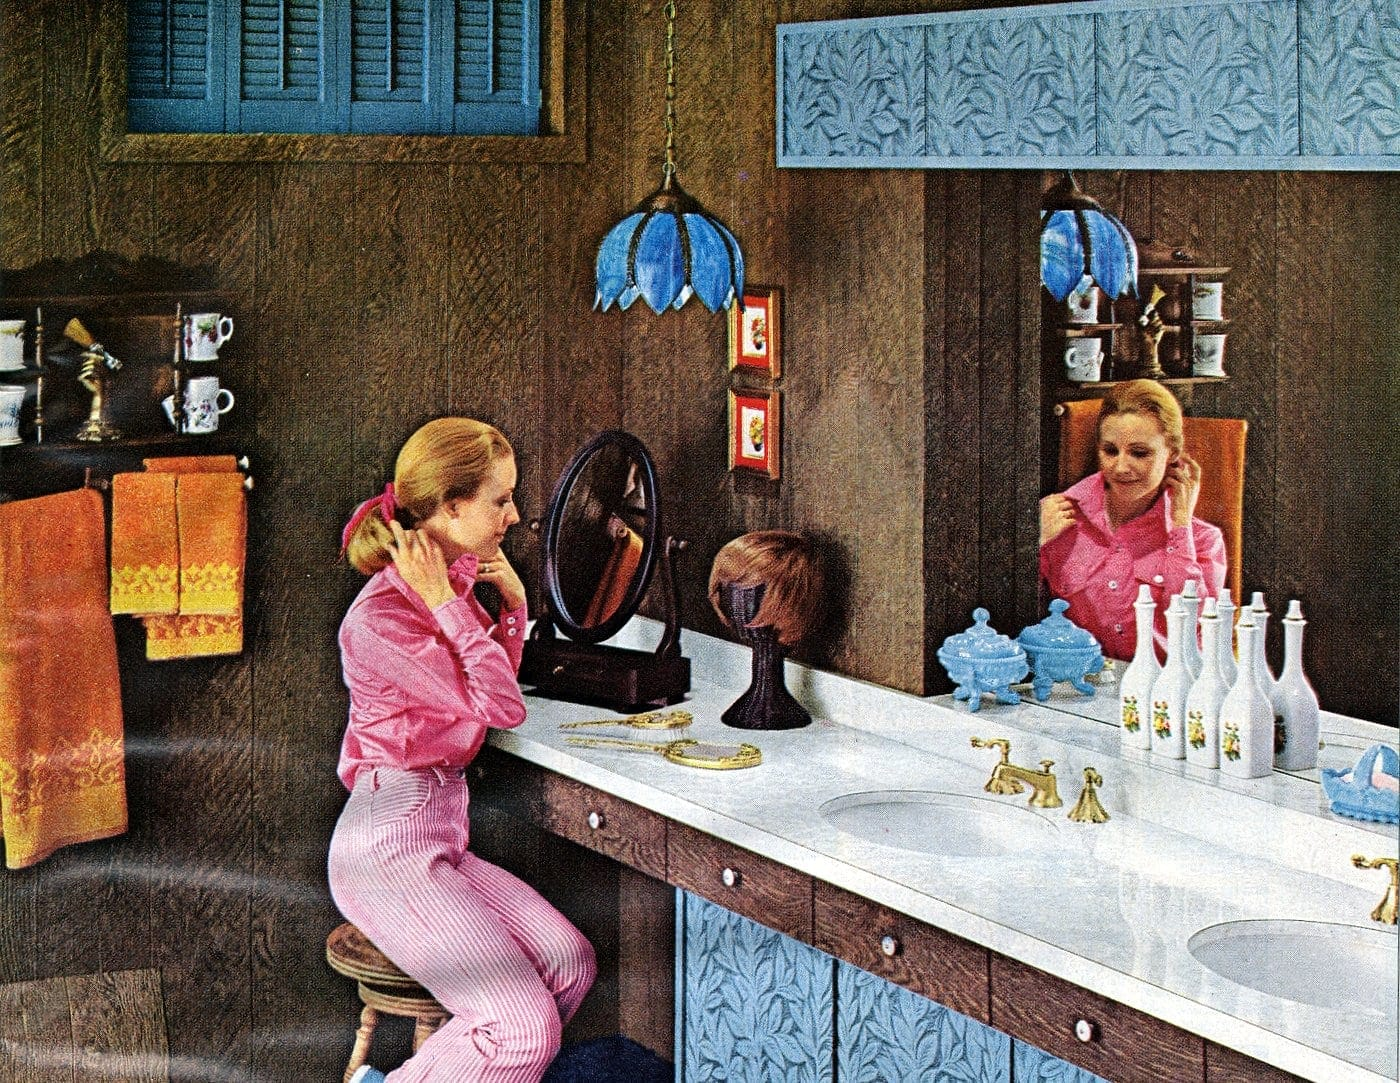 Wood paneled bathroom with blue laminate accents from 1970s